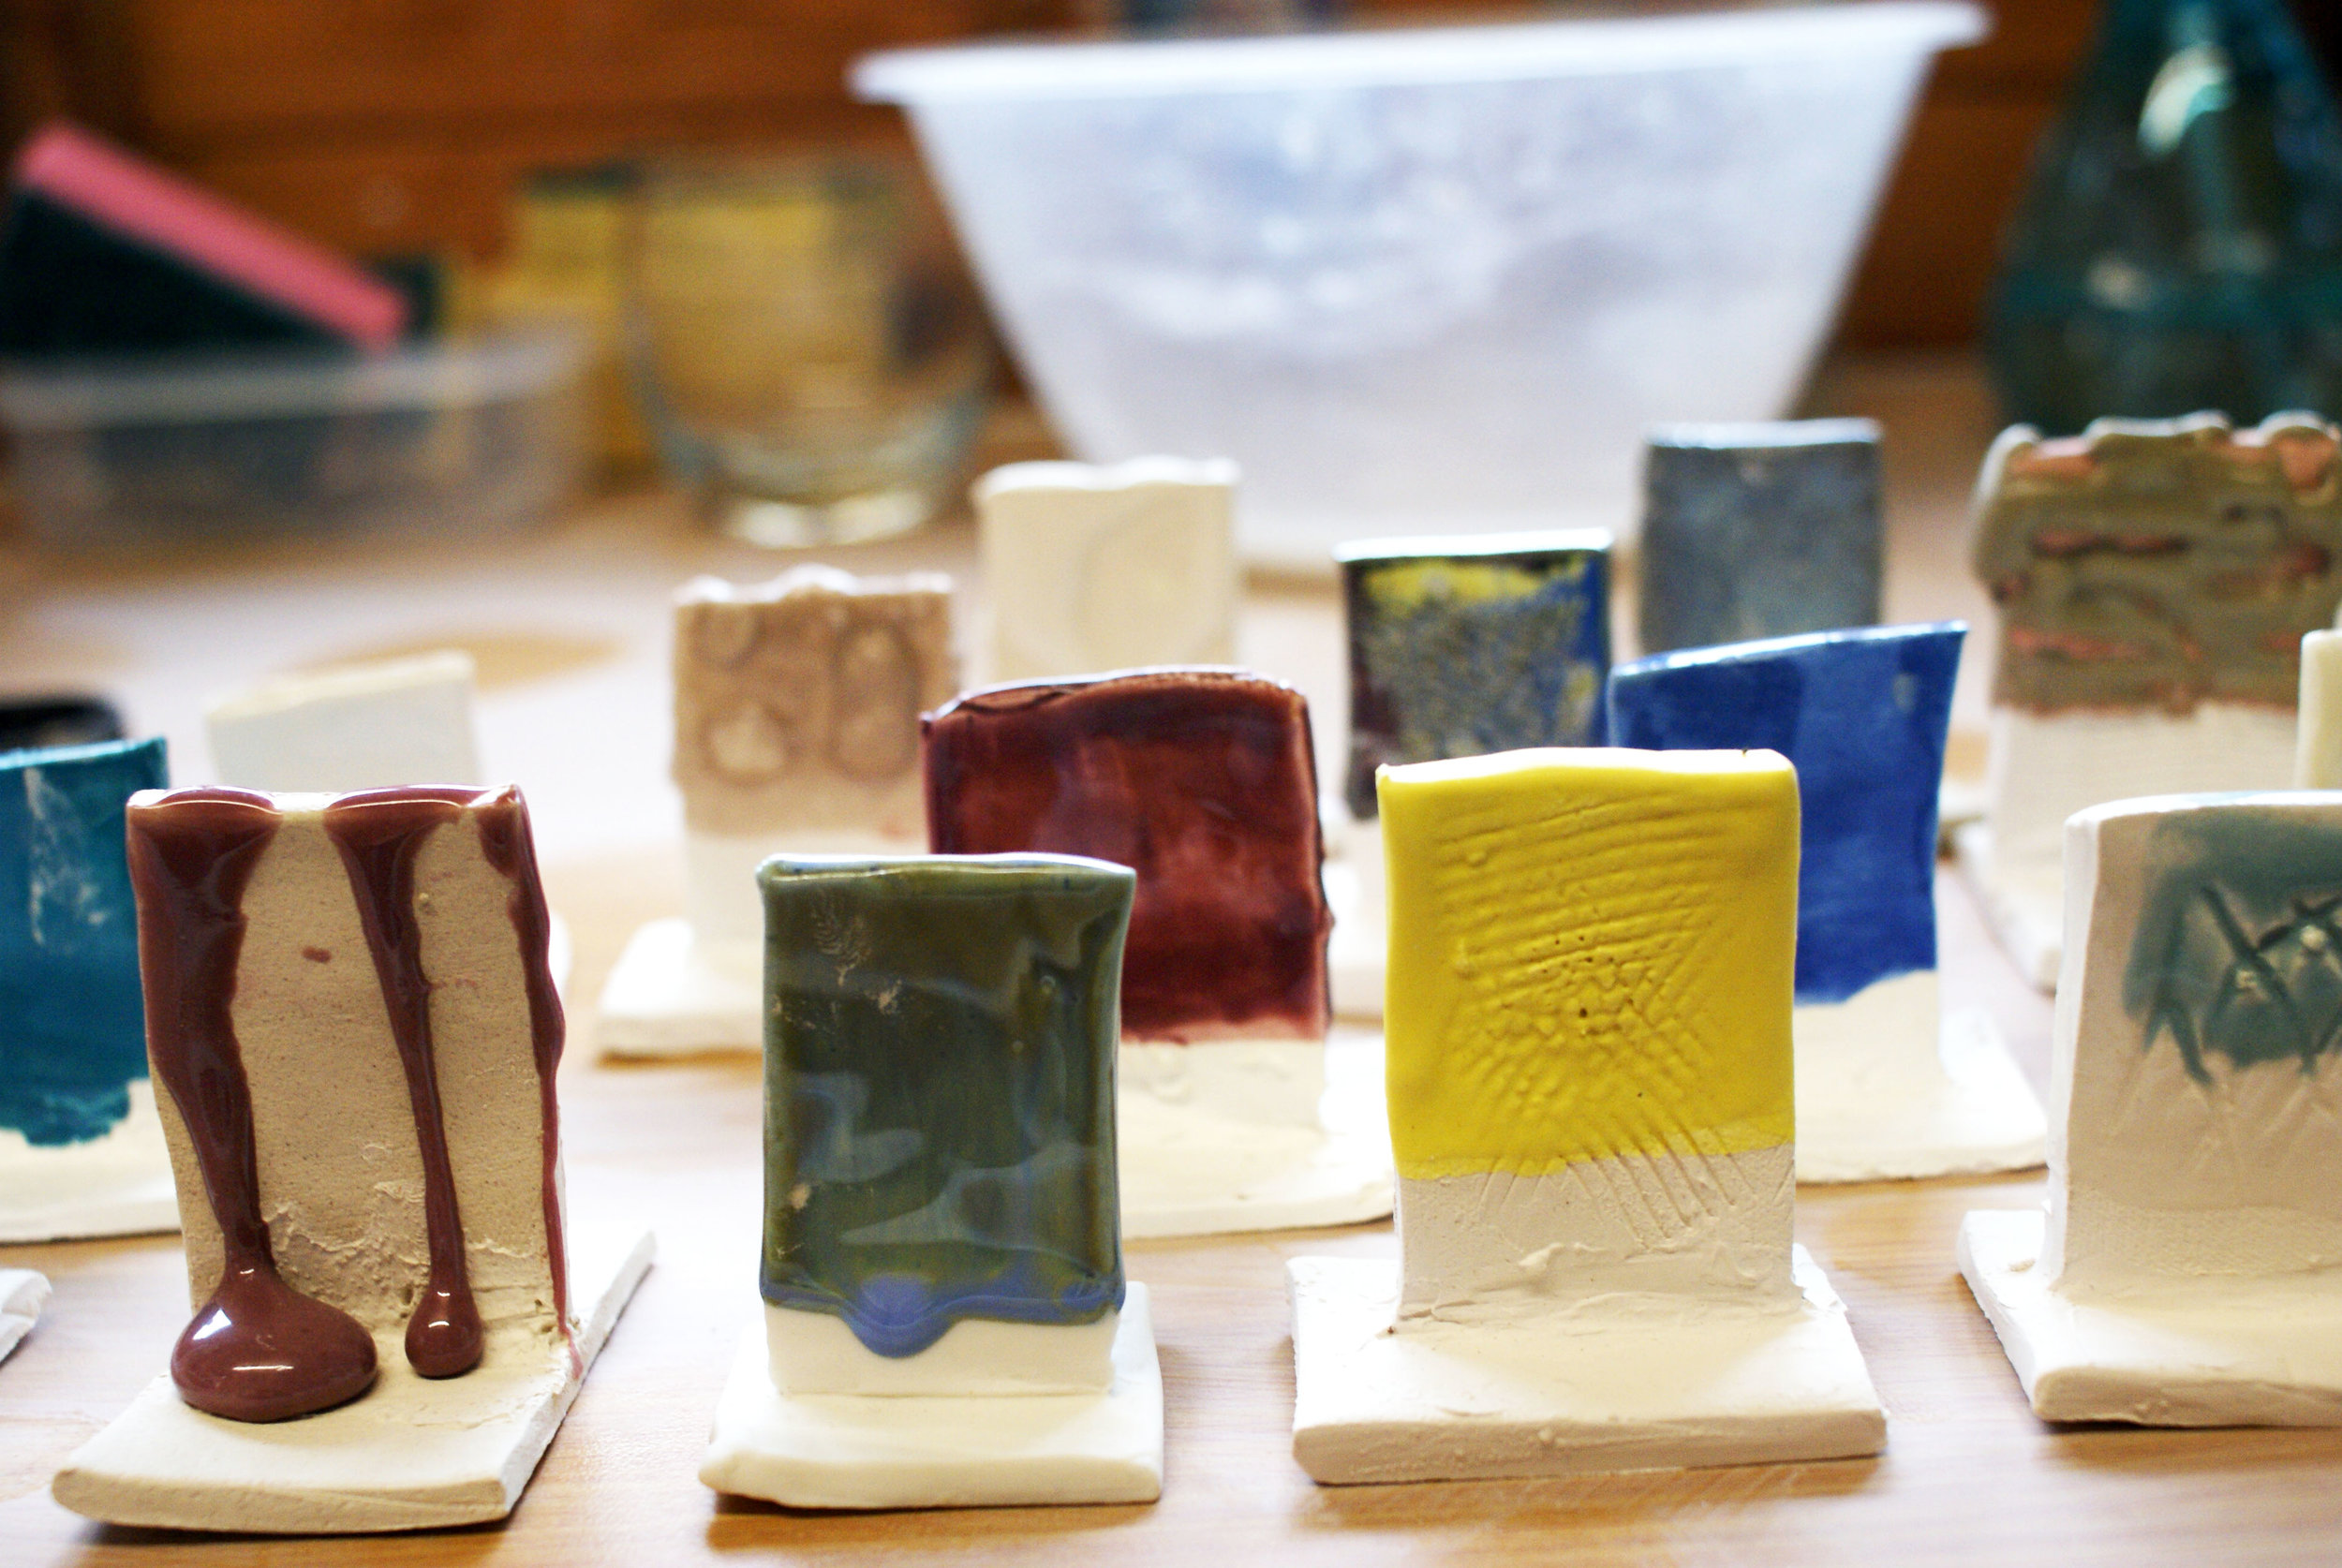 ISOBEL HIGLEY'S RAW GLAZE WITH DIFFERENT ADDITIONS